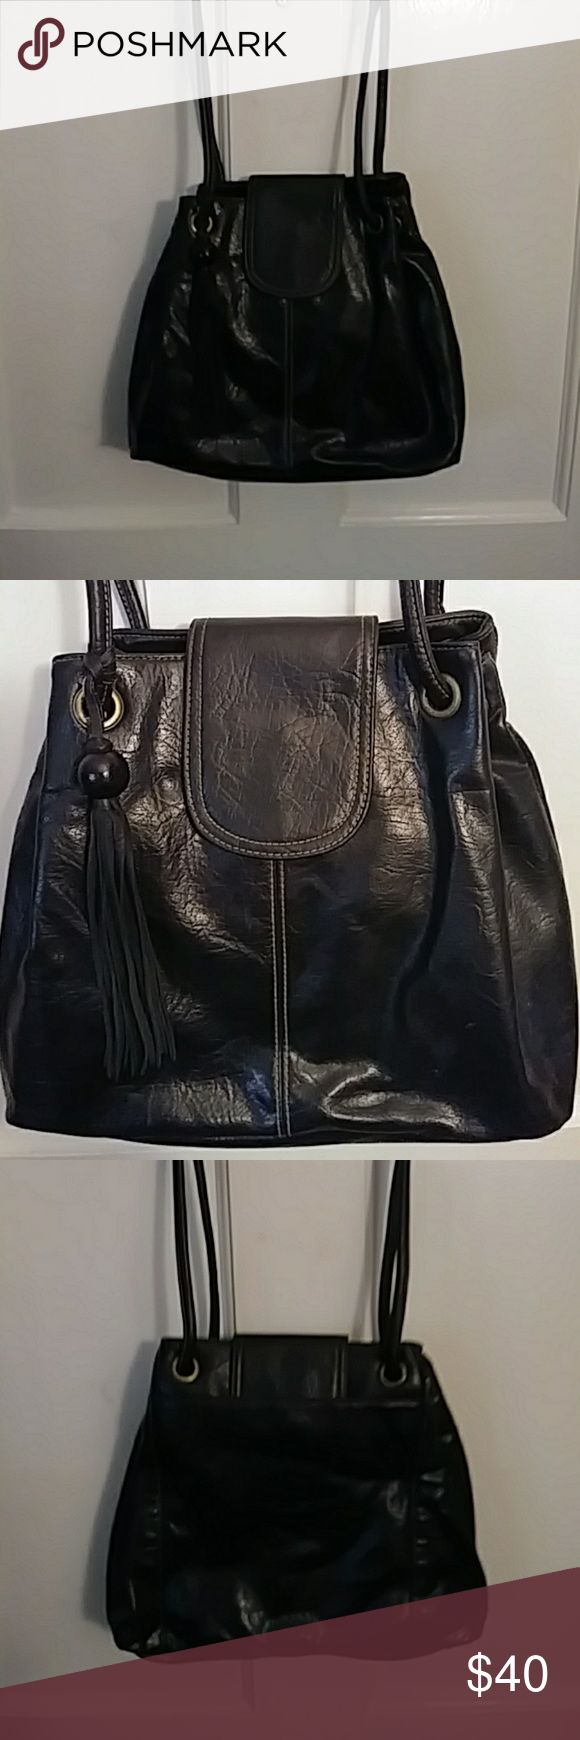 Black Leather Hobo Bag Gently used smooth leather  handbag with drawstring, tassel and topstiching. American Apparel Bags Hobos